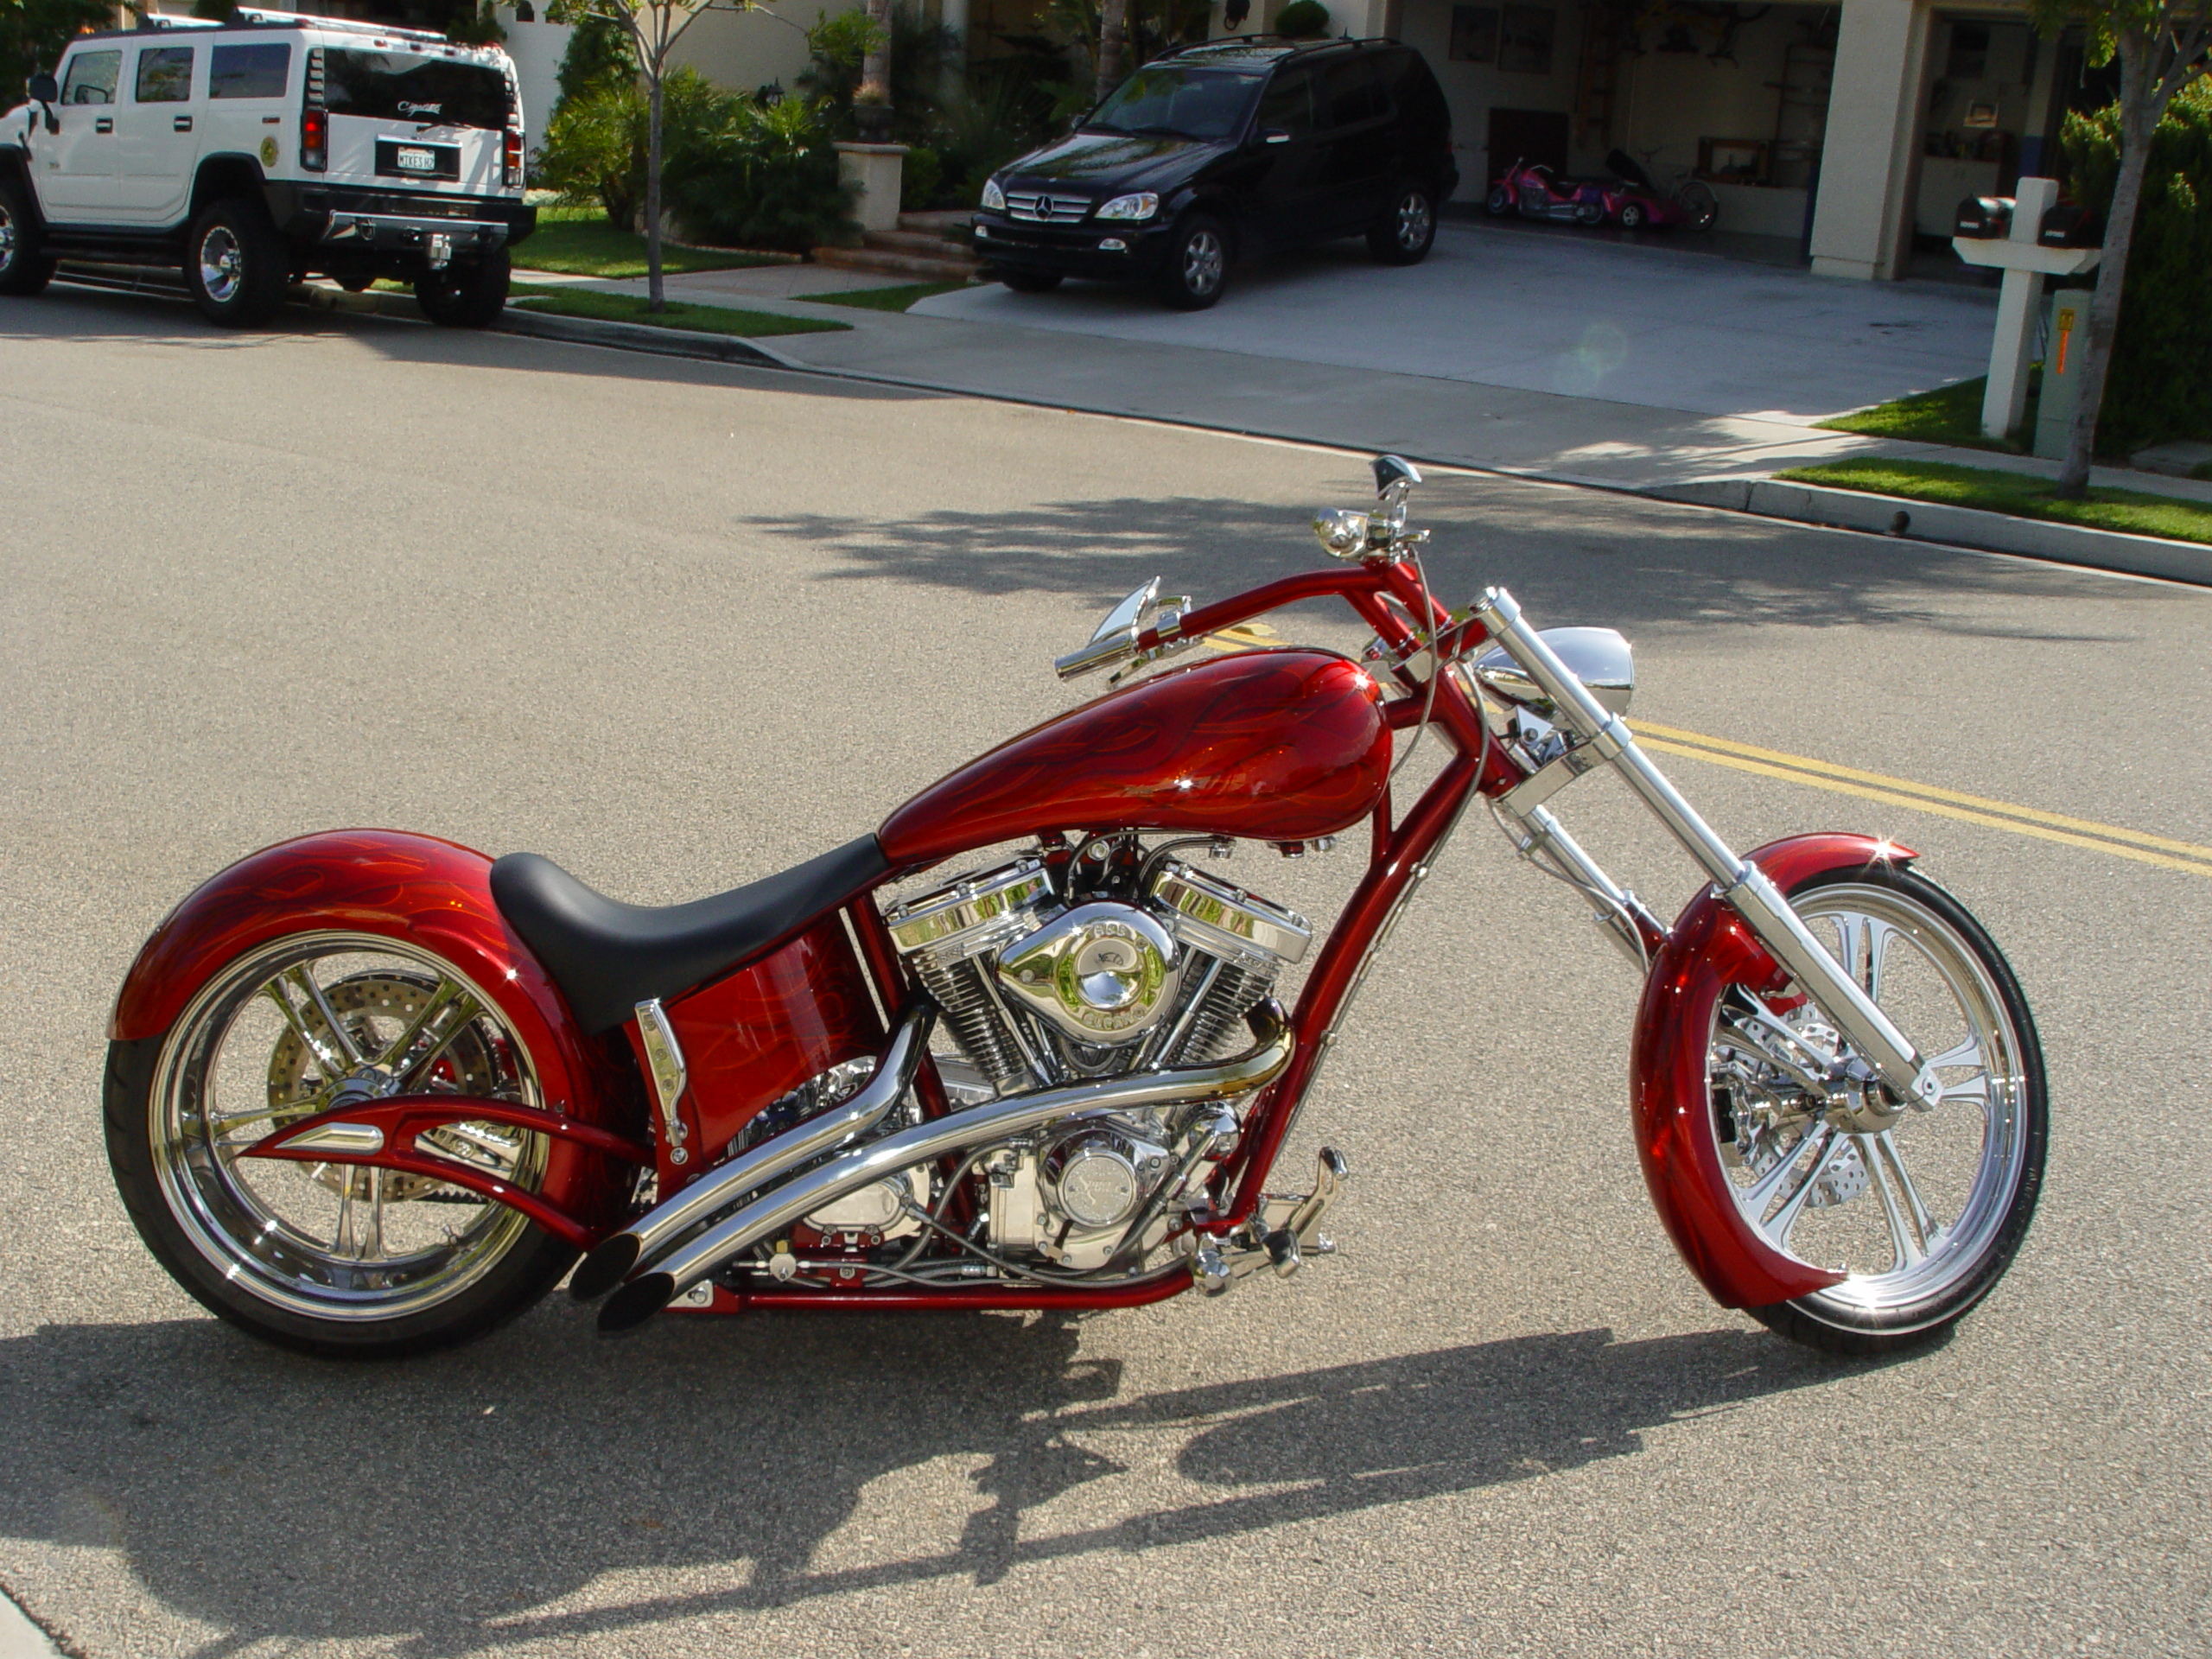 Big bear choppers merc photo - 4